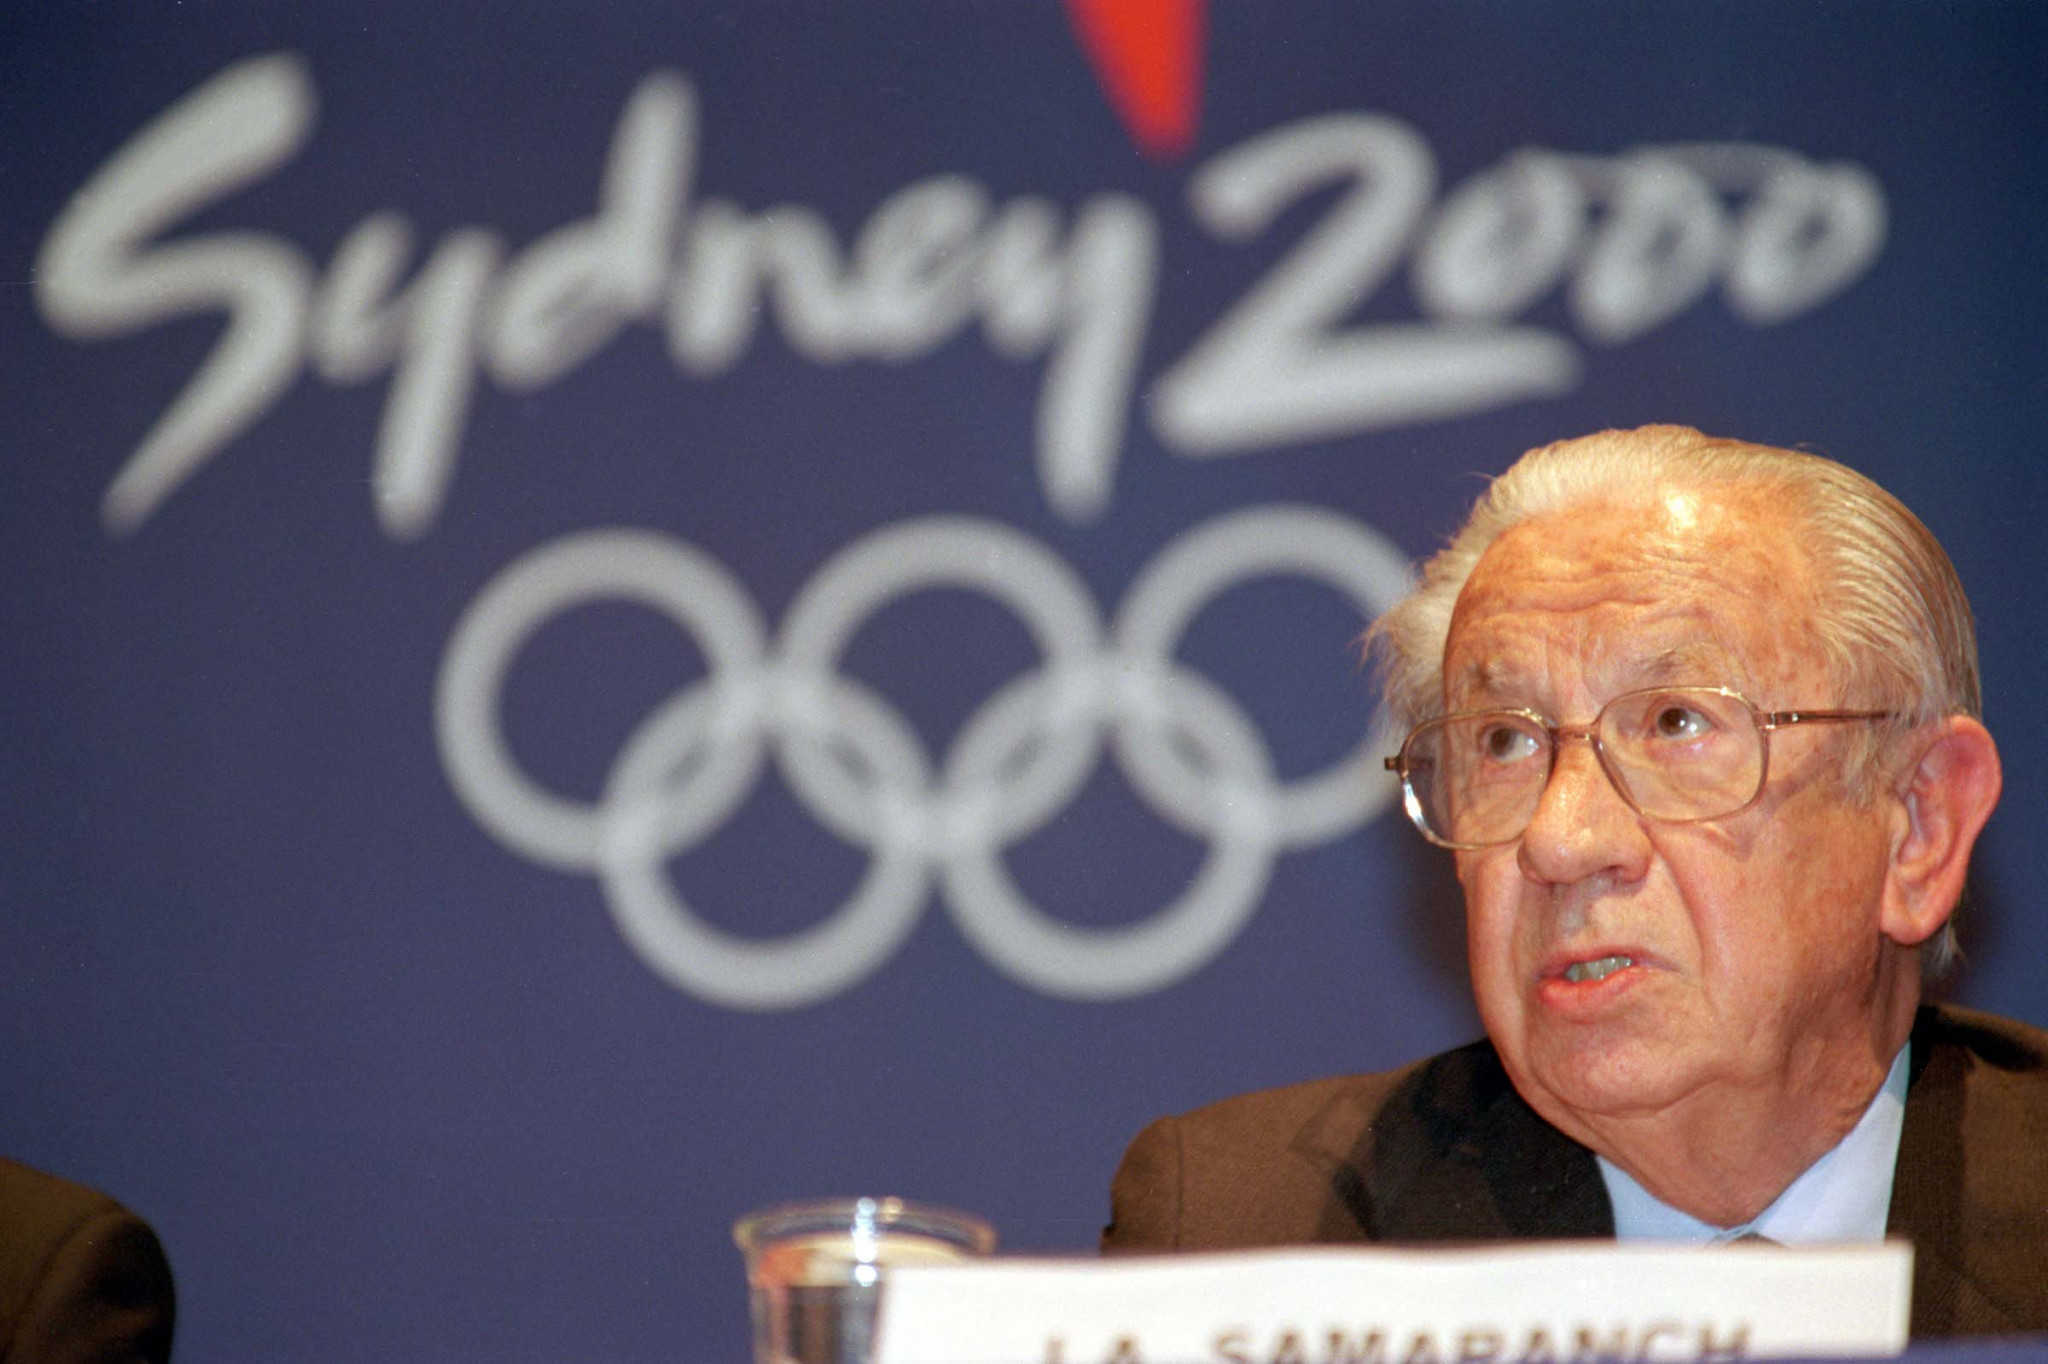 """Juan Antonio Samaranch, IOC President during Sydney 2000, spoke at the time of his """"delight"""" that athletes from East Tibor were able to experience Olympic competition ©Getty Images"""